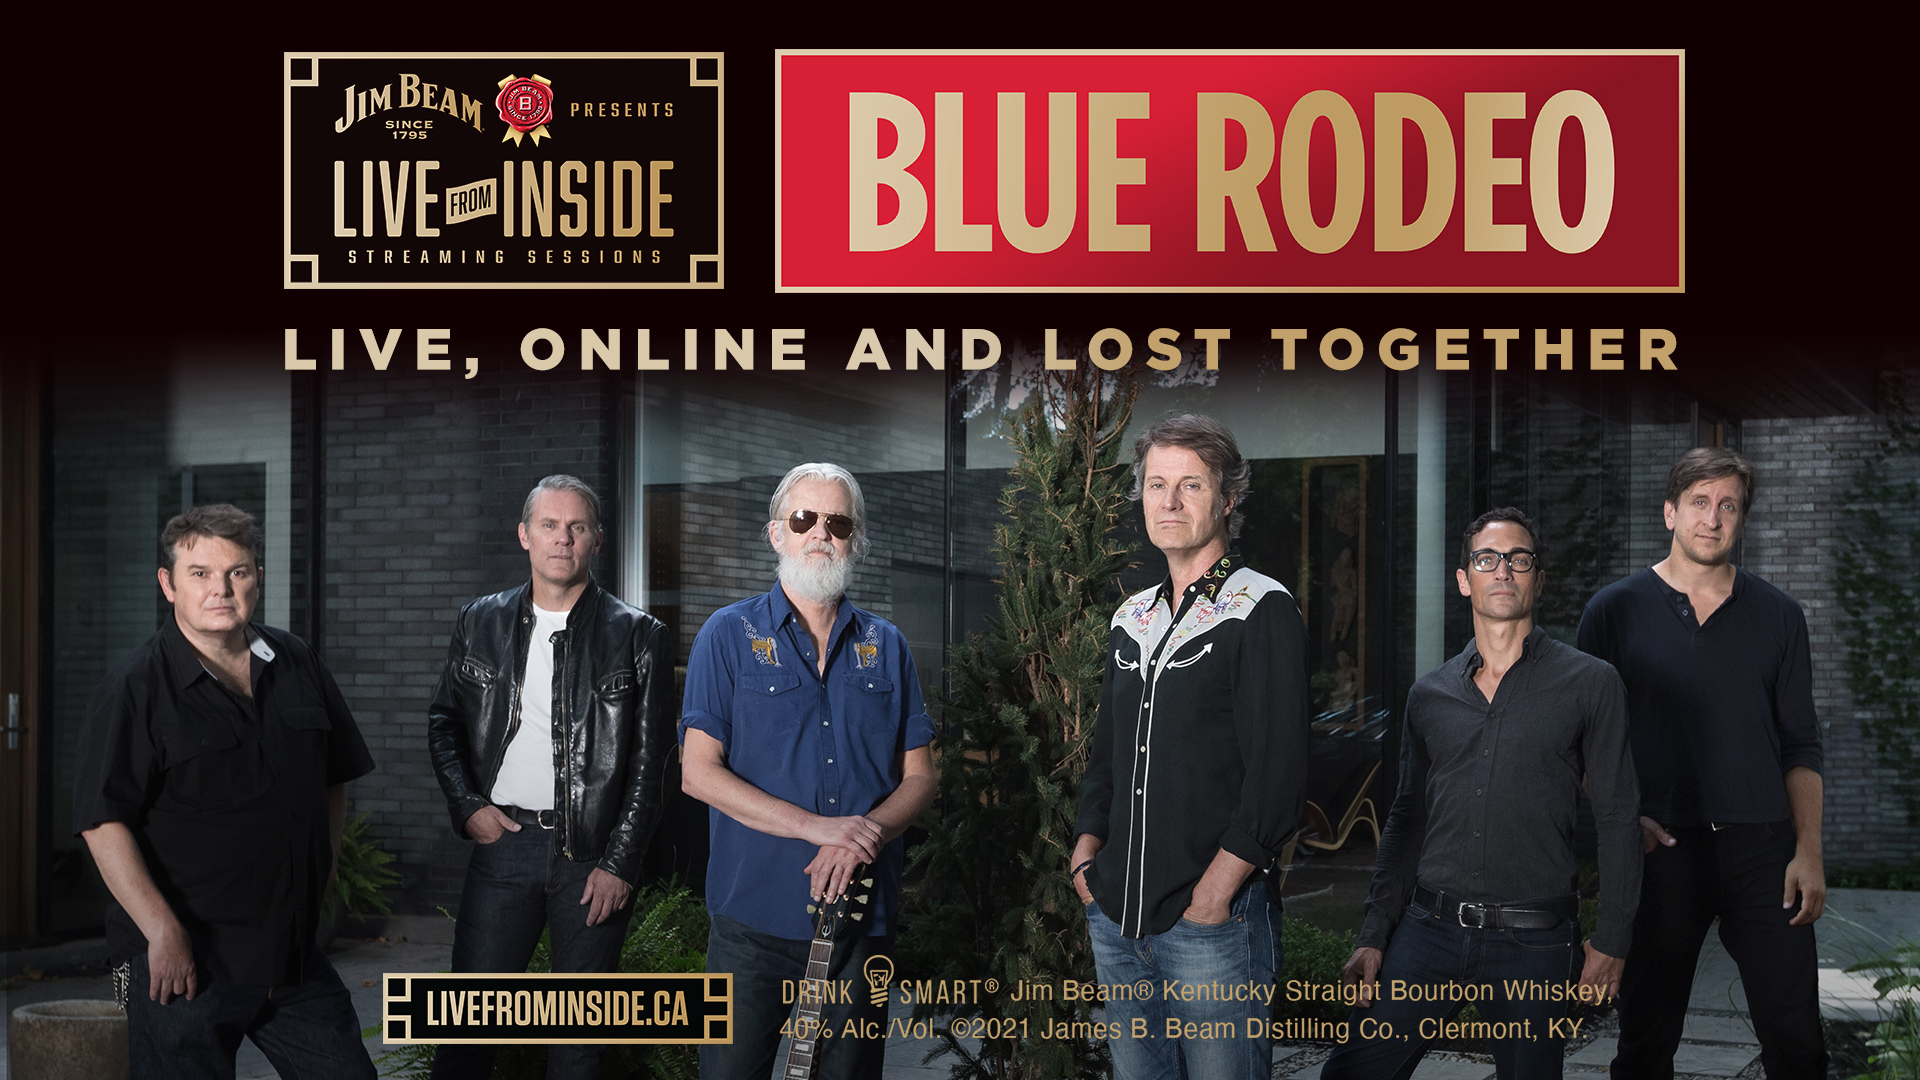 Jim Beam Presents Live From Inside: Blue Rodeo – Live Online and Lost Together